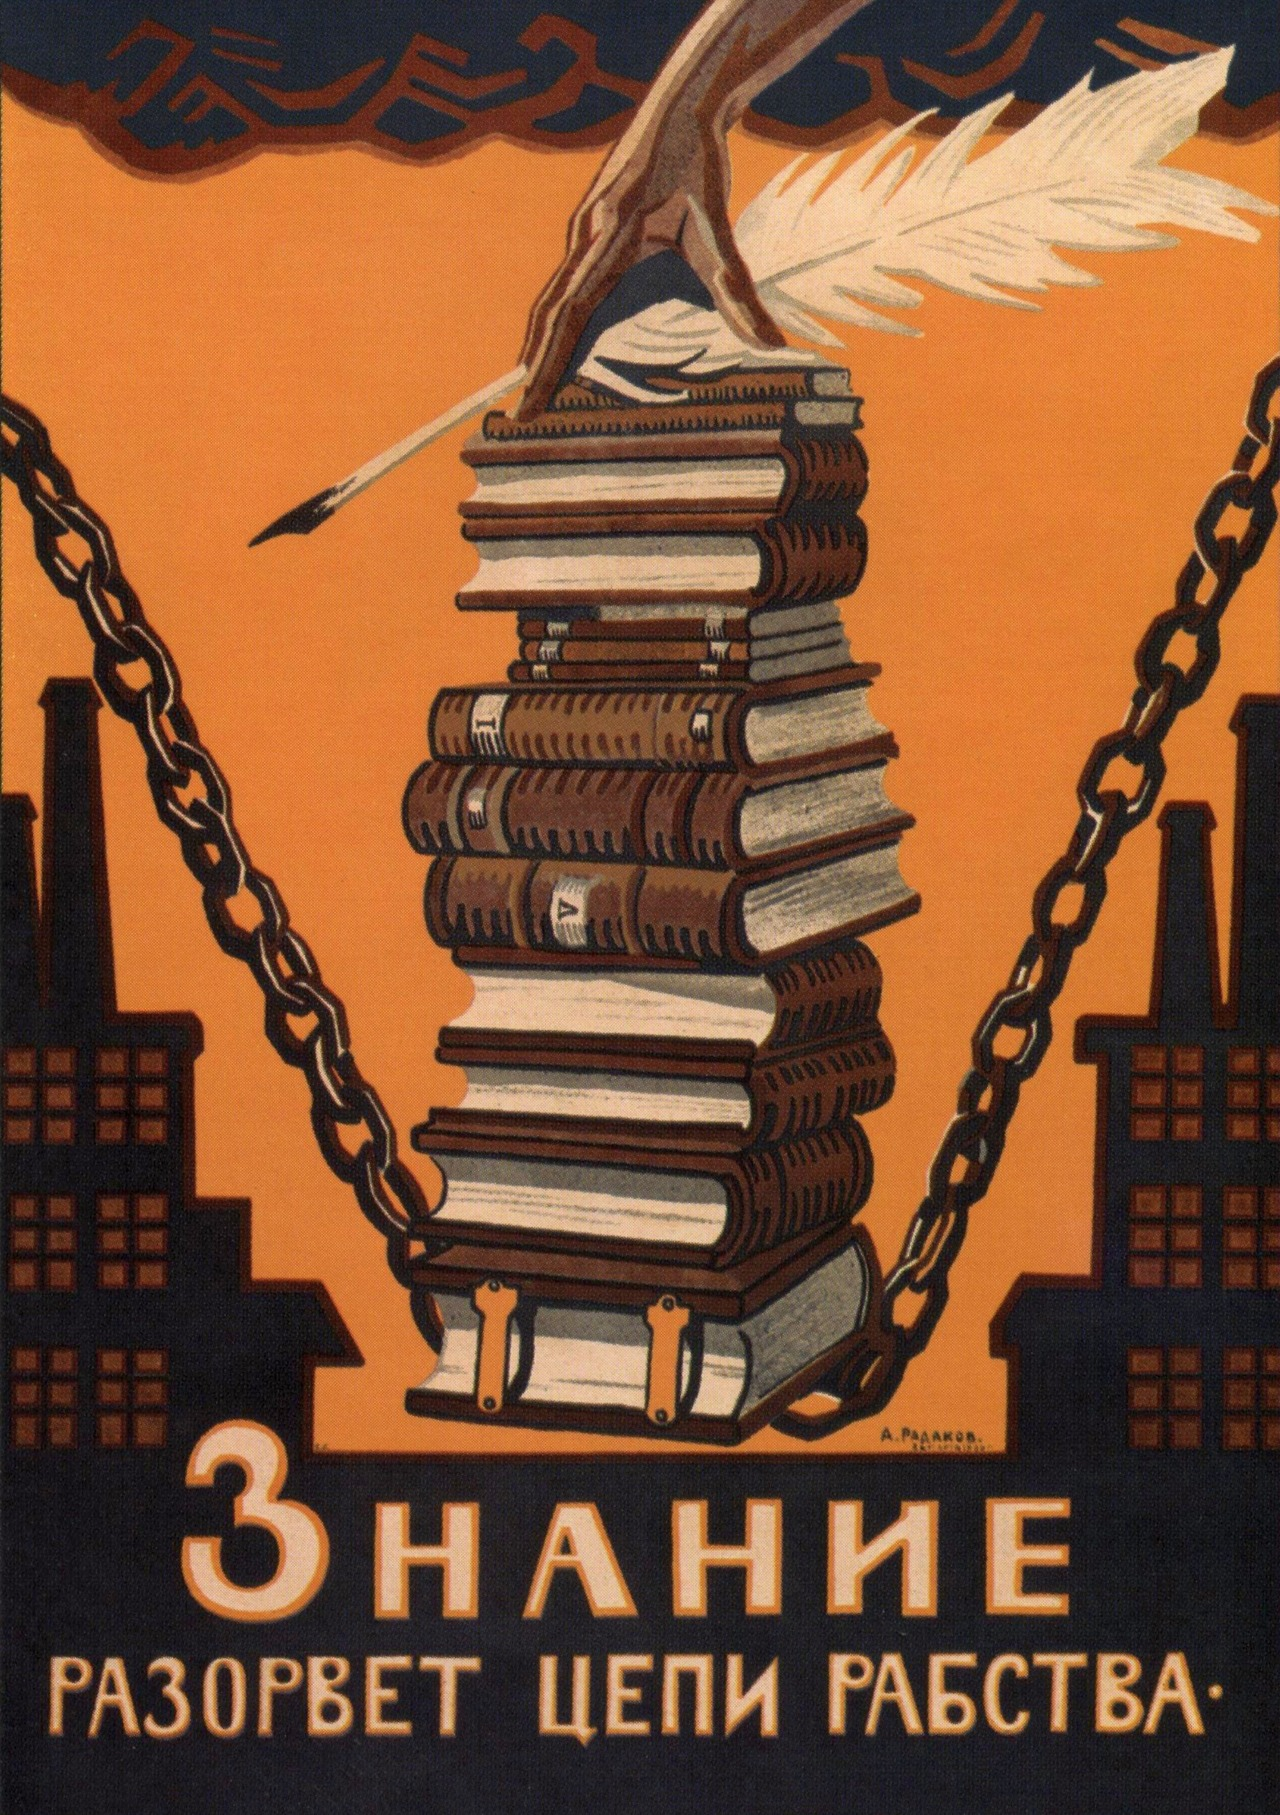 """Knowledge will break the chains of slavery."" (Alexei Radakov, 1920) ""El conocimiento romperá las cadenas de la esclavitud."" (Alexei Radakov, 1920)"